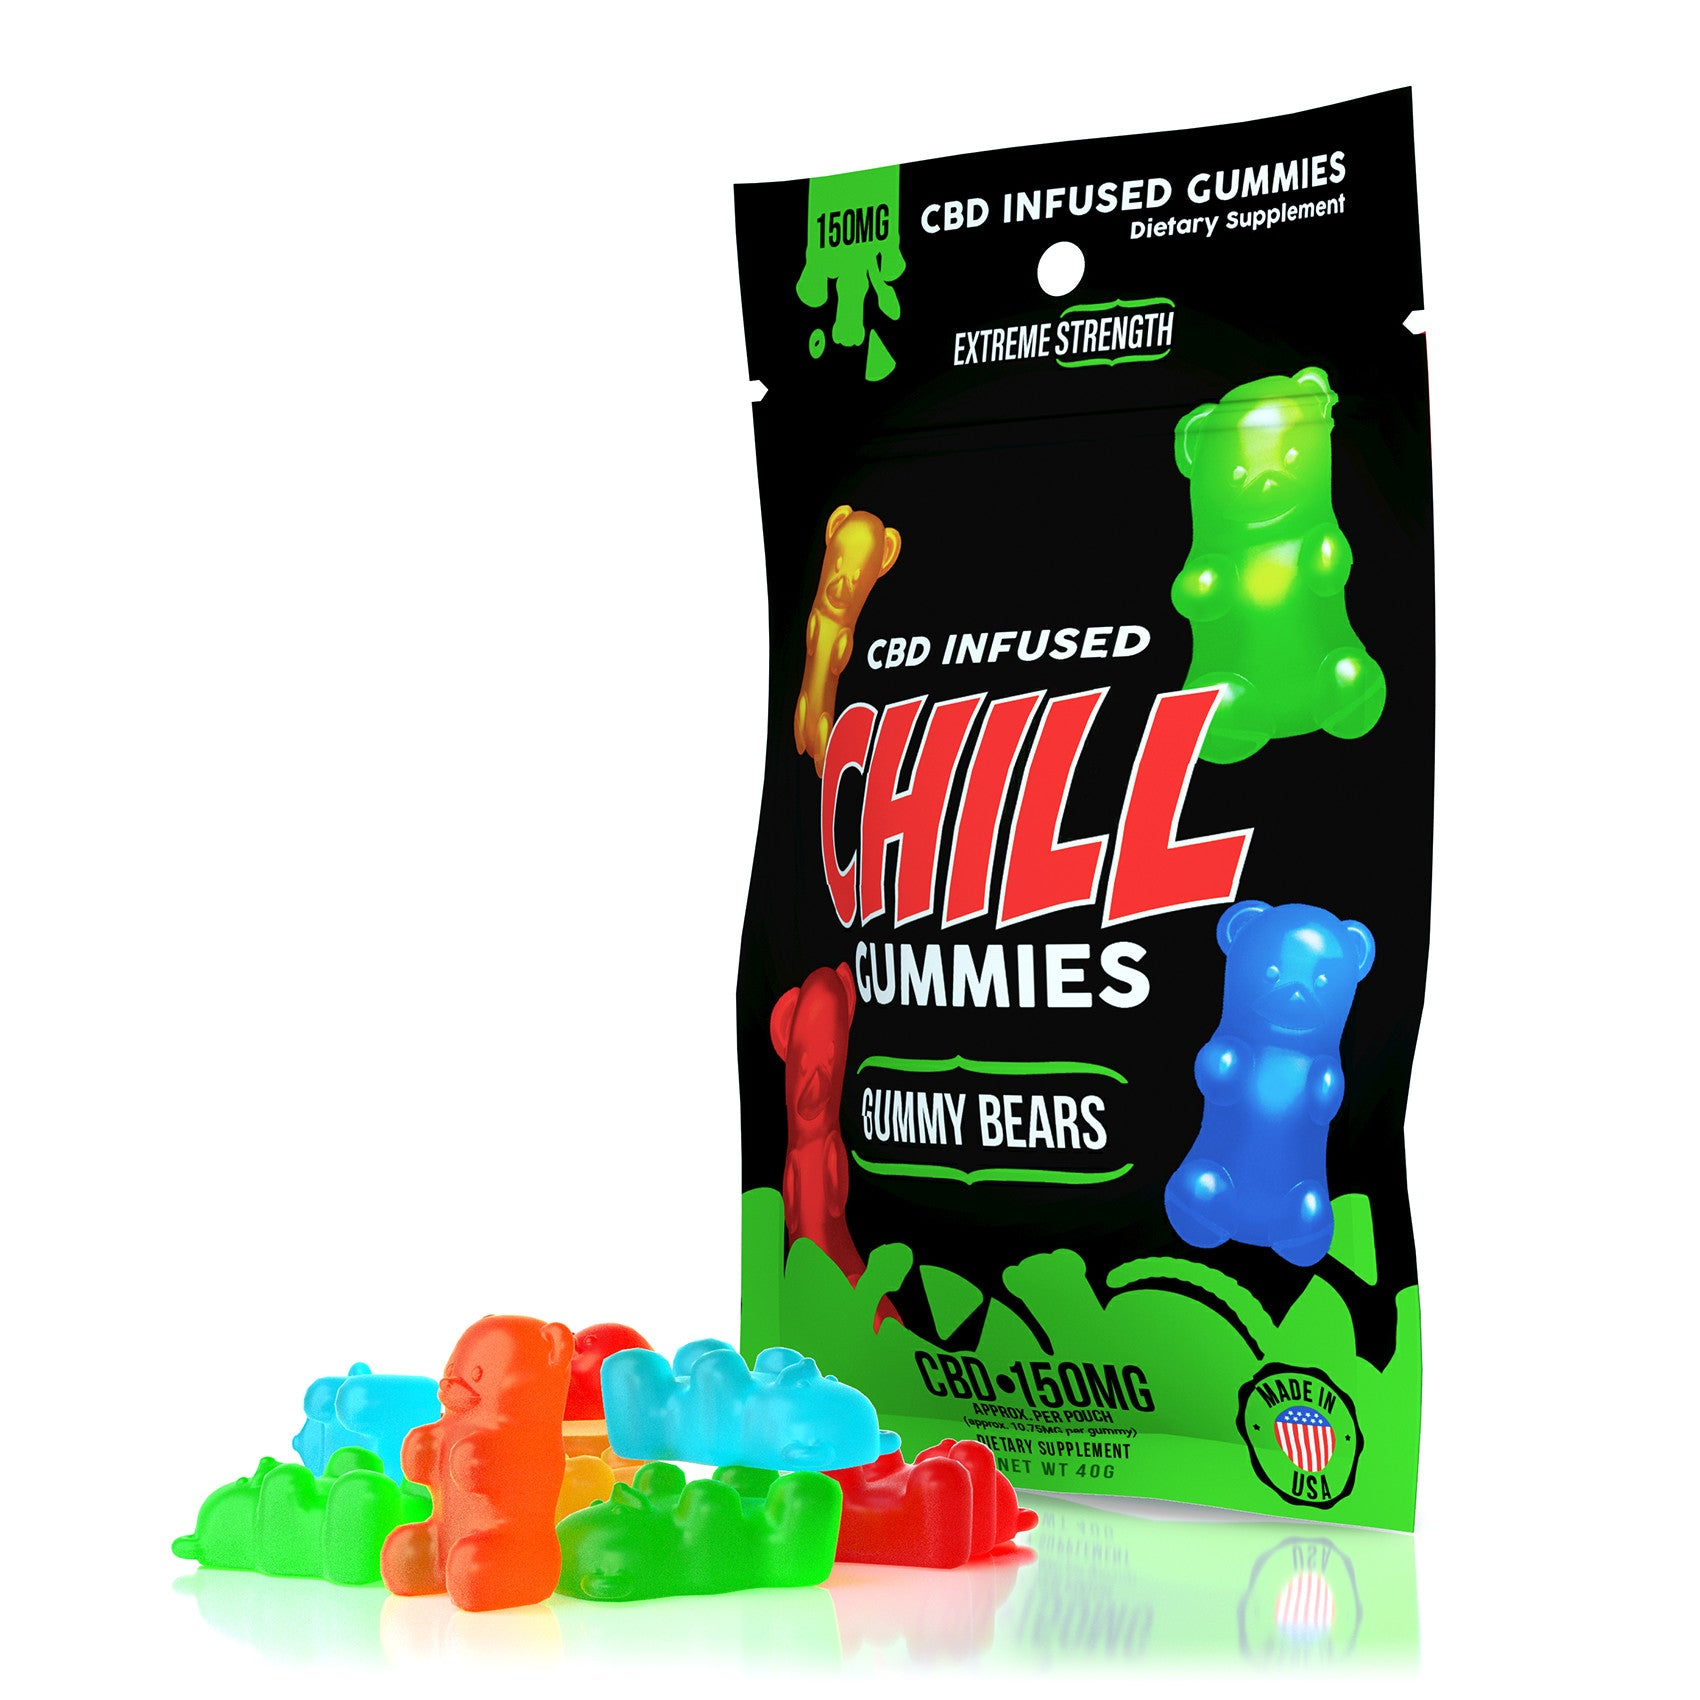 CHILL GUMMIES - CBD INFUSED GUMMY BEARS - EC Direct CBD